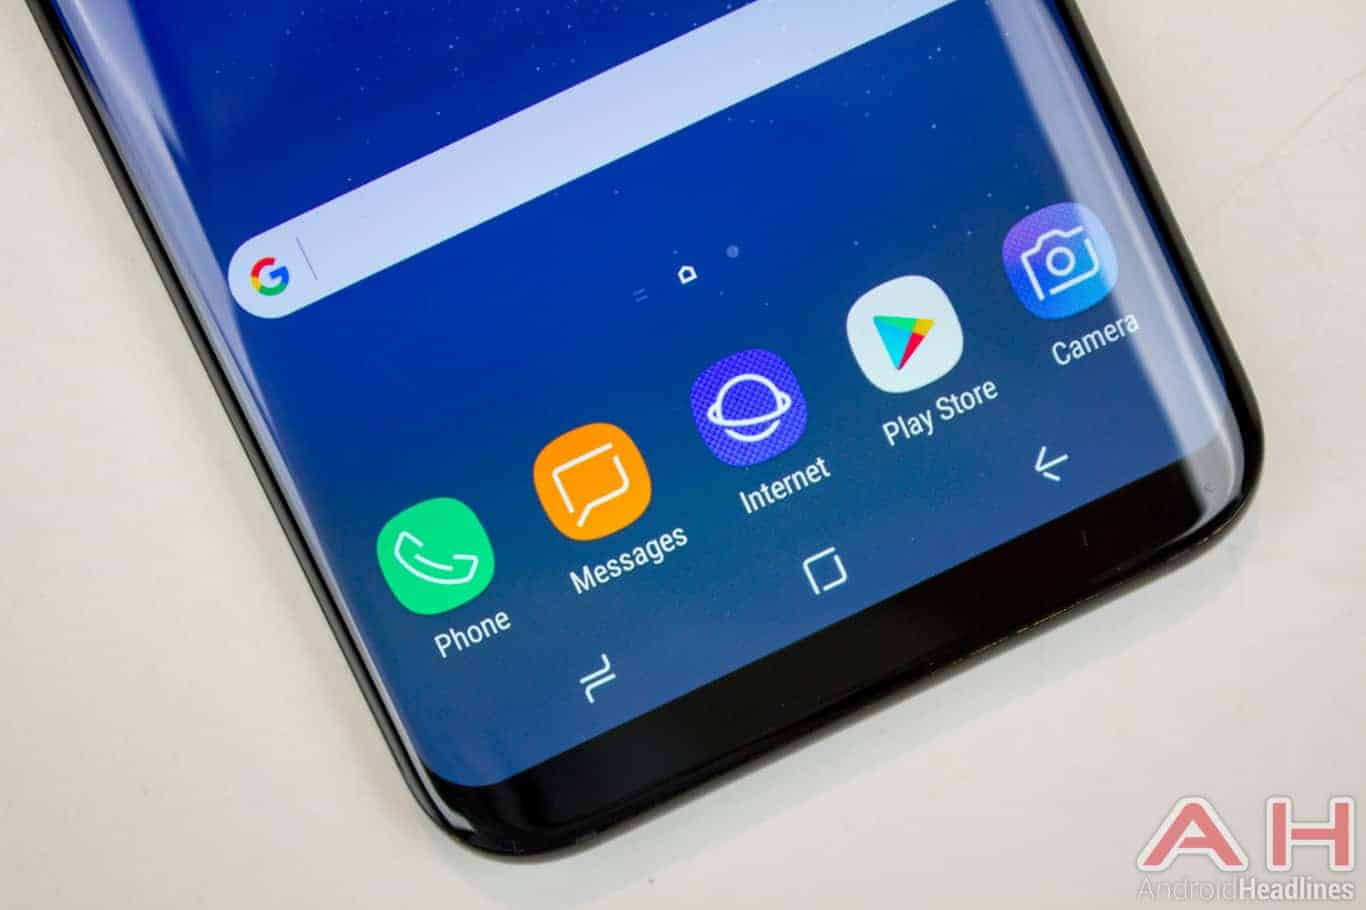 Ga galaxy s8 wallpaper stock - Likely One Of The More Controversial Decisions With Some Users Is Going To Be The Removal Of The Physical Buttons On The Front Replaced With What Has